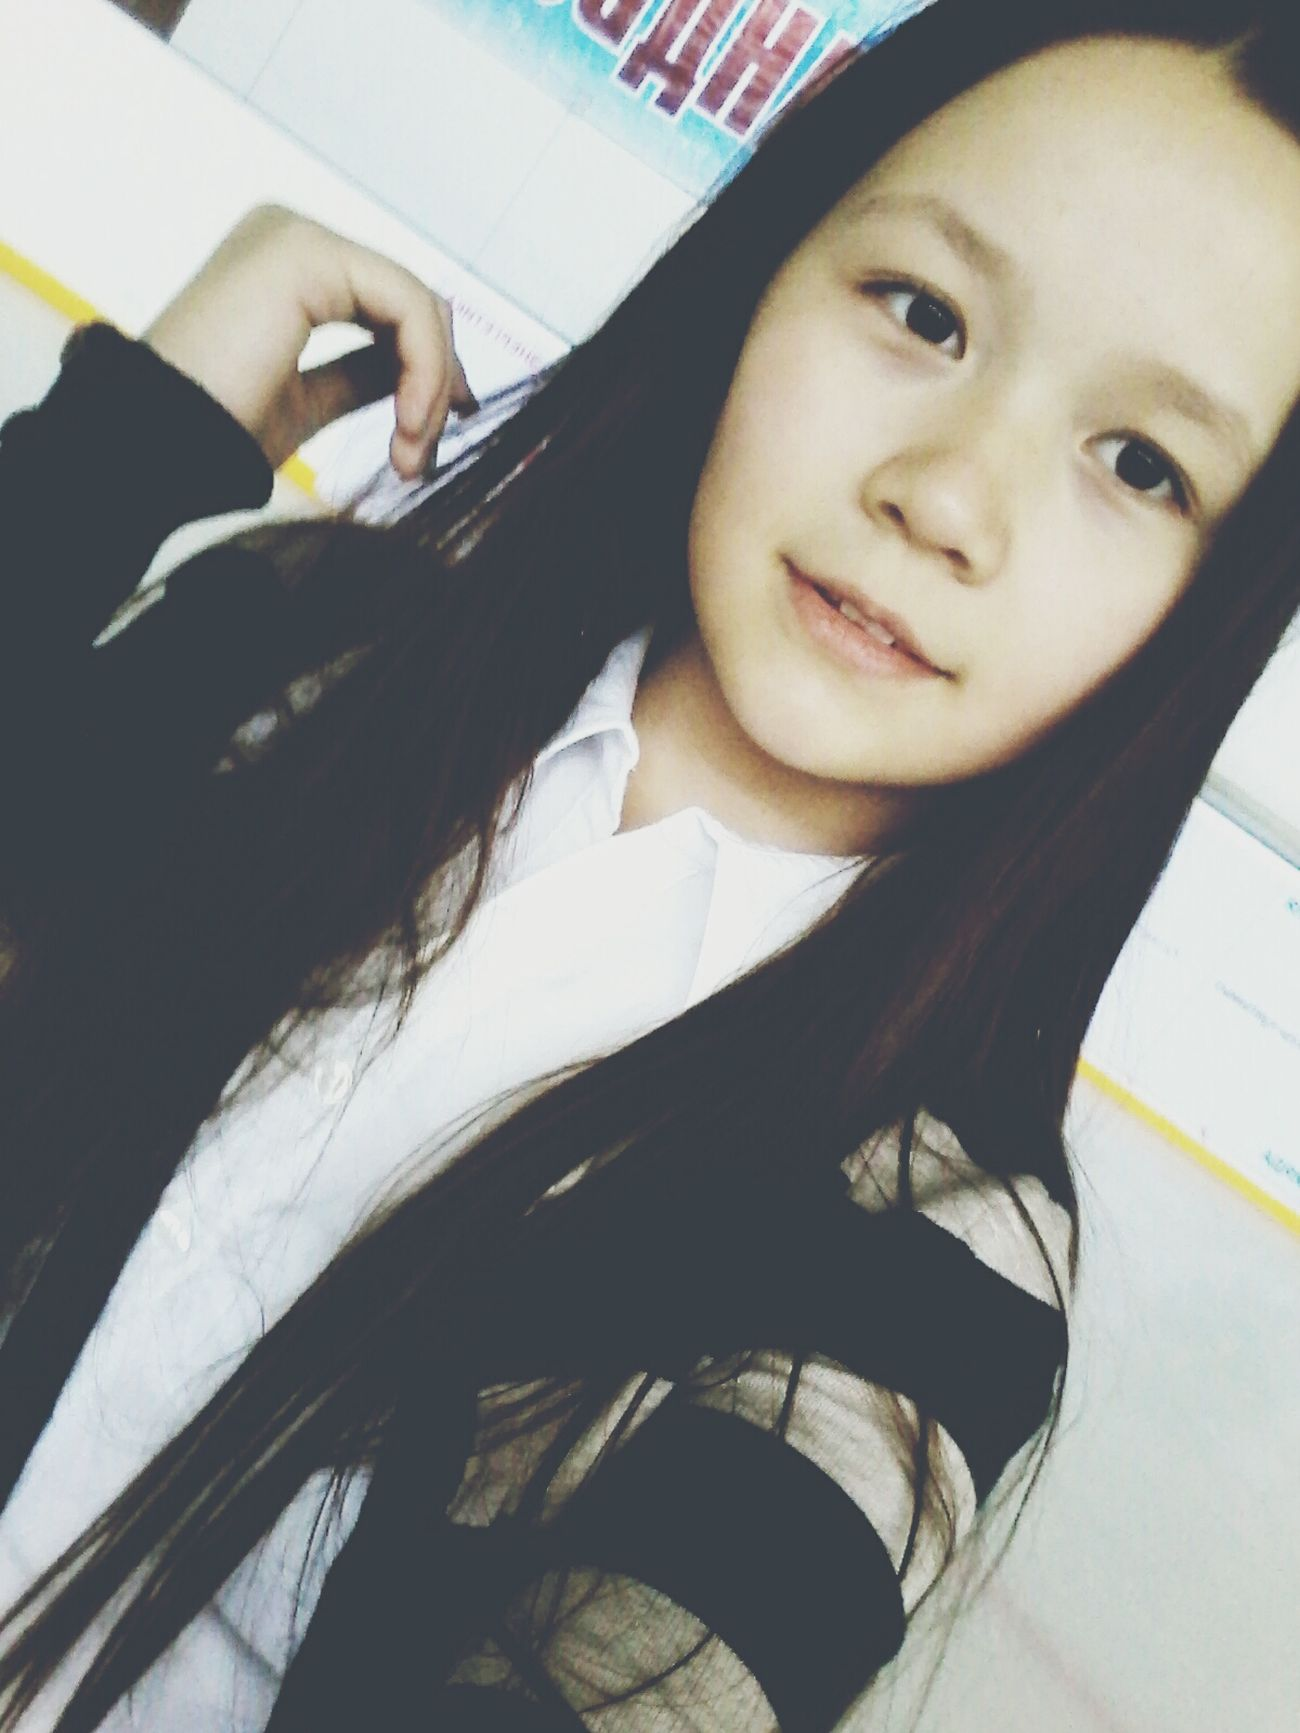 ★ At School First Eyeem Photo